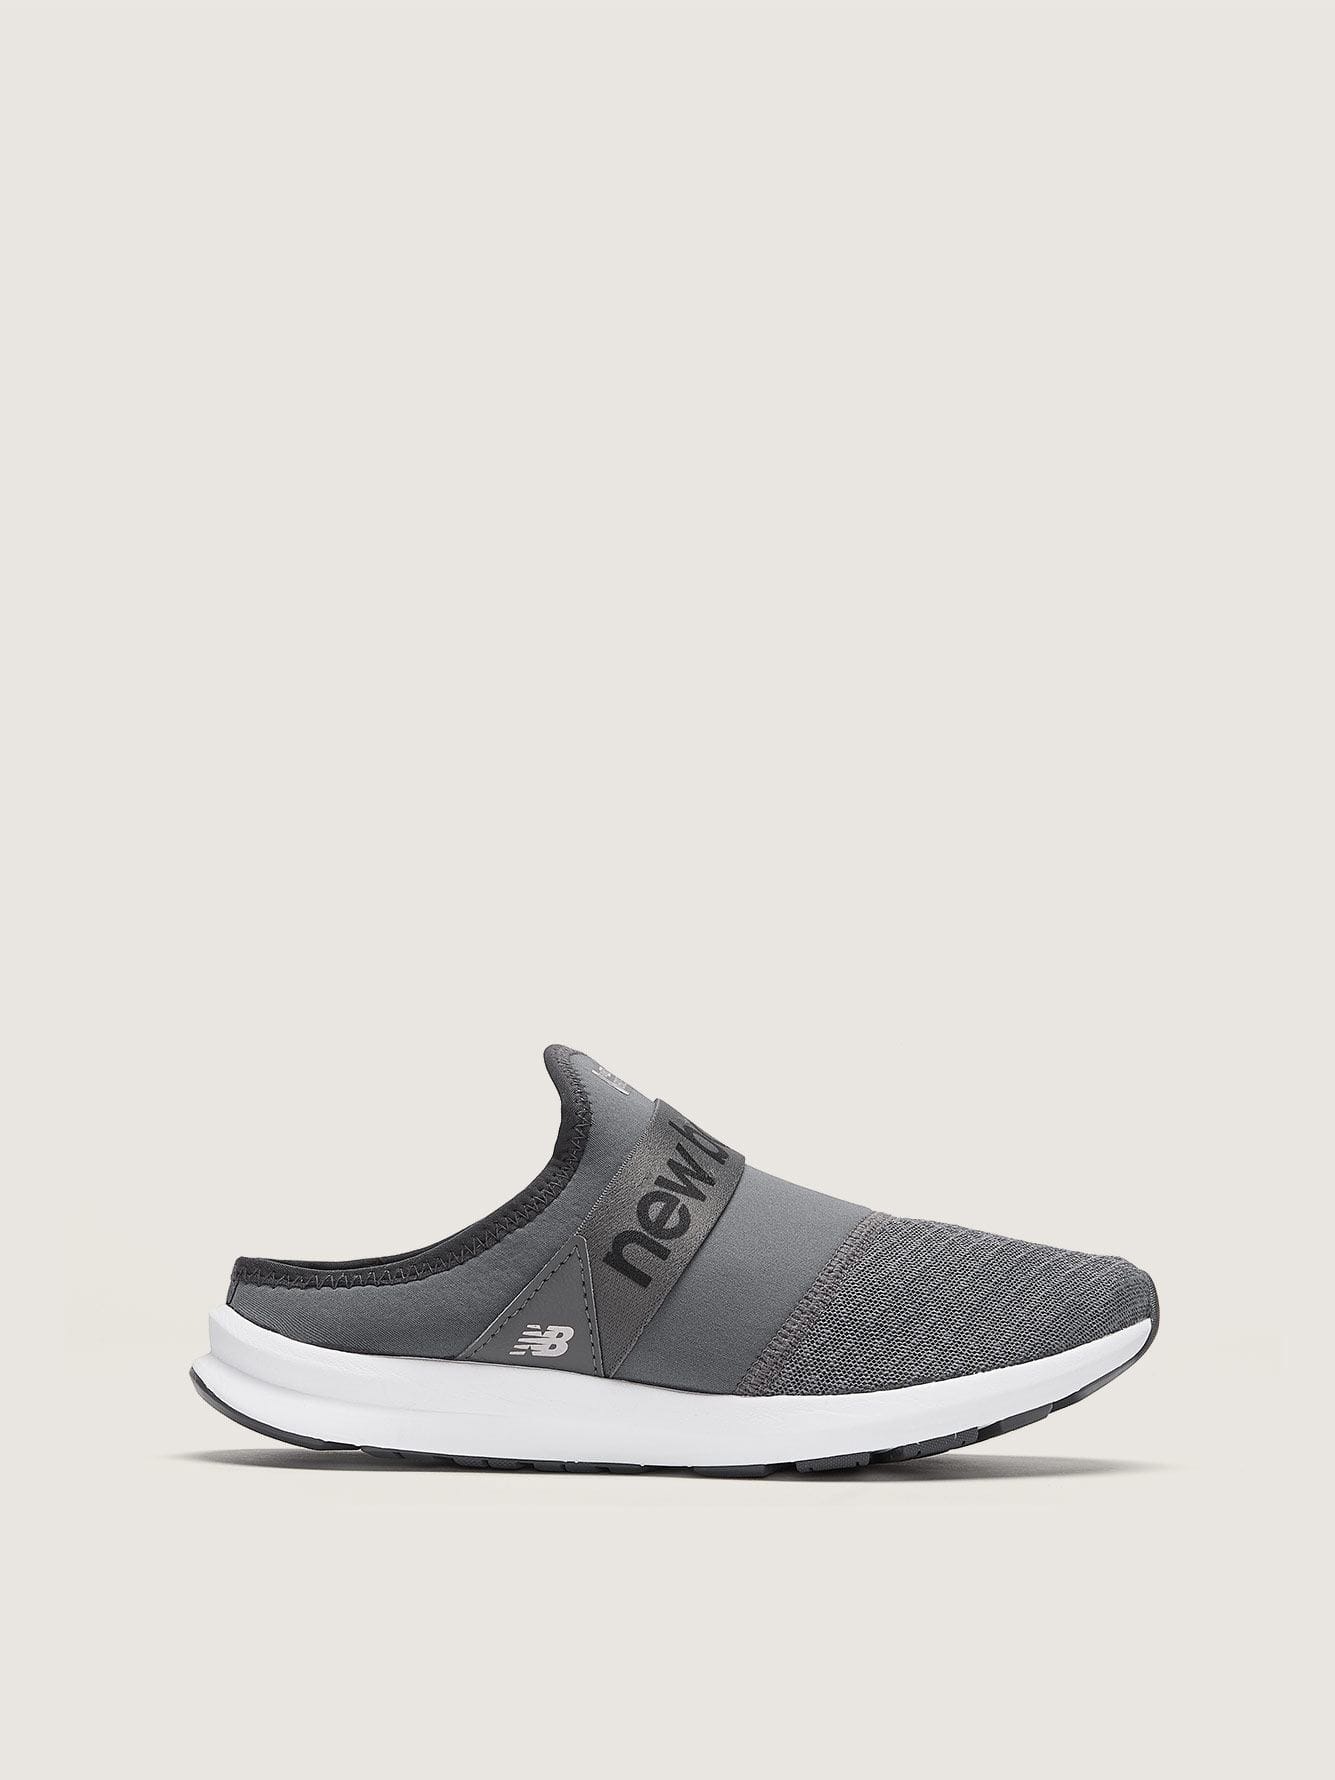 Wide Fuelcore Nergize Mules - New Balance